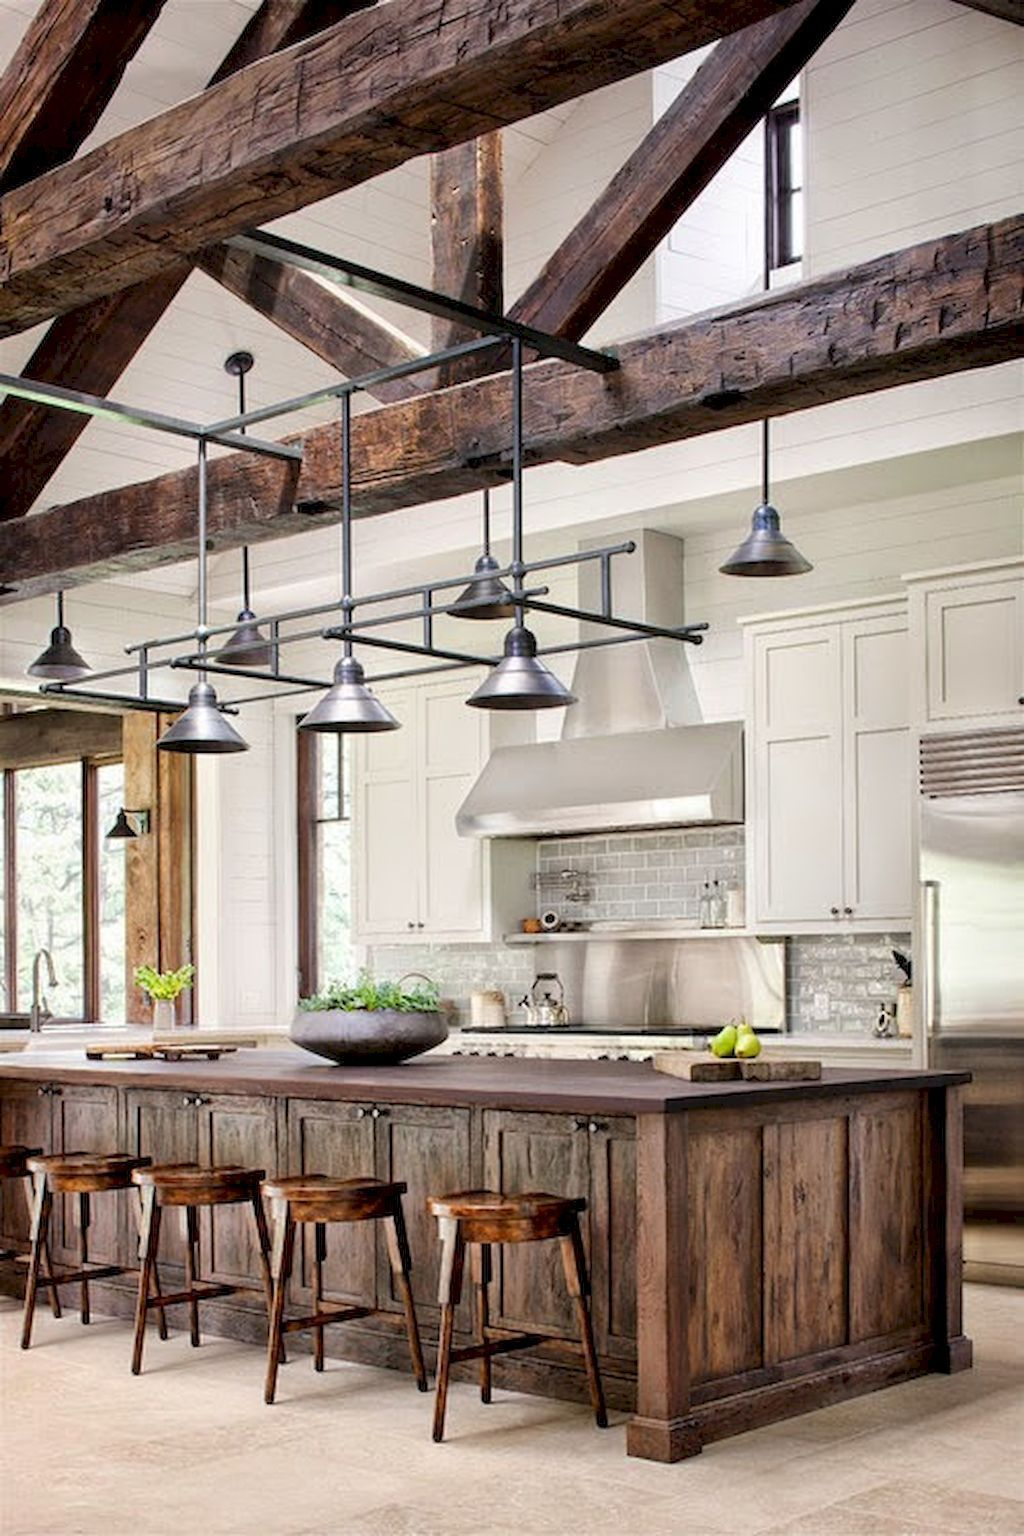 60+ STUNNING RUSTIC KITCHEN DECORATING IDEAS AND REMODEL